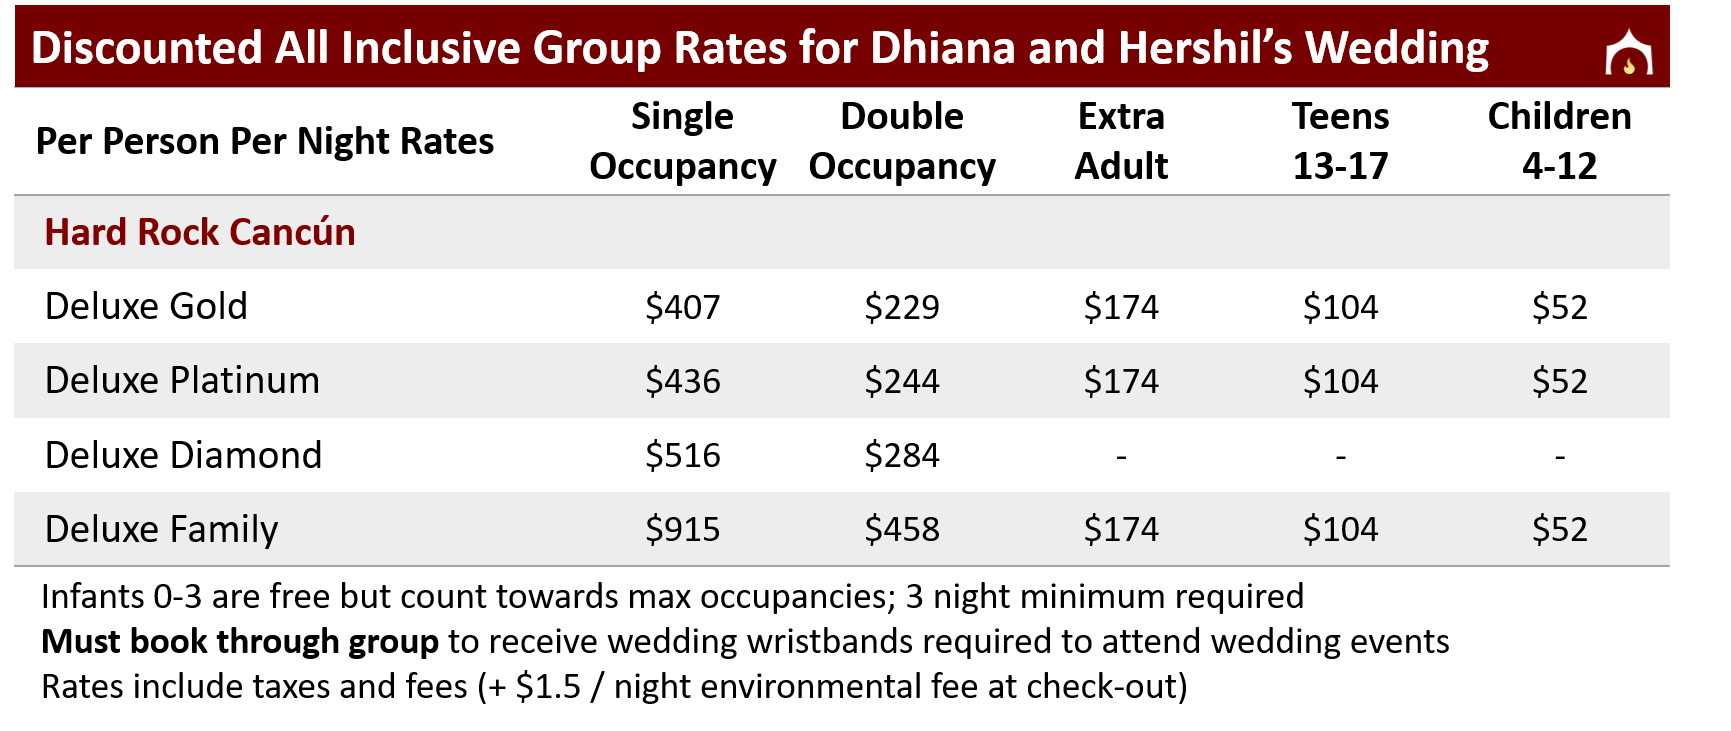 Discounted Group Rates for Dhiana and Hershil v2.png